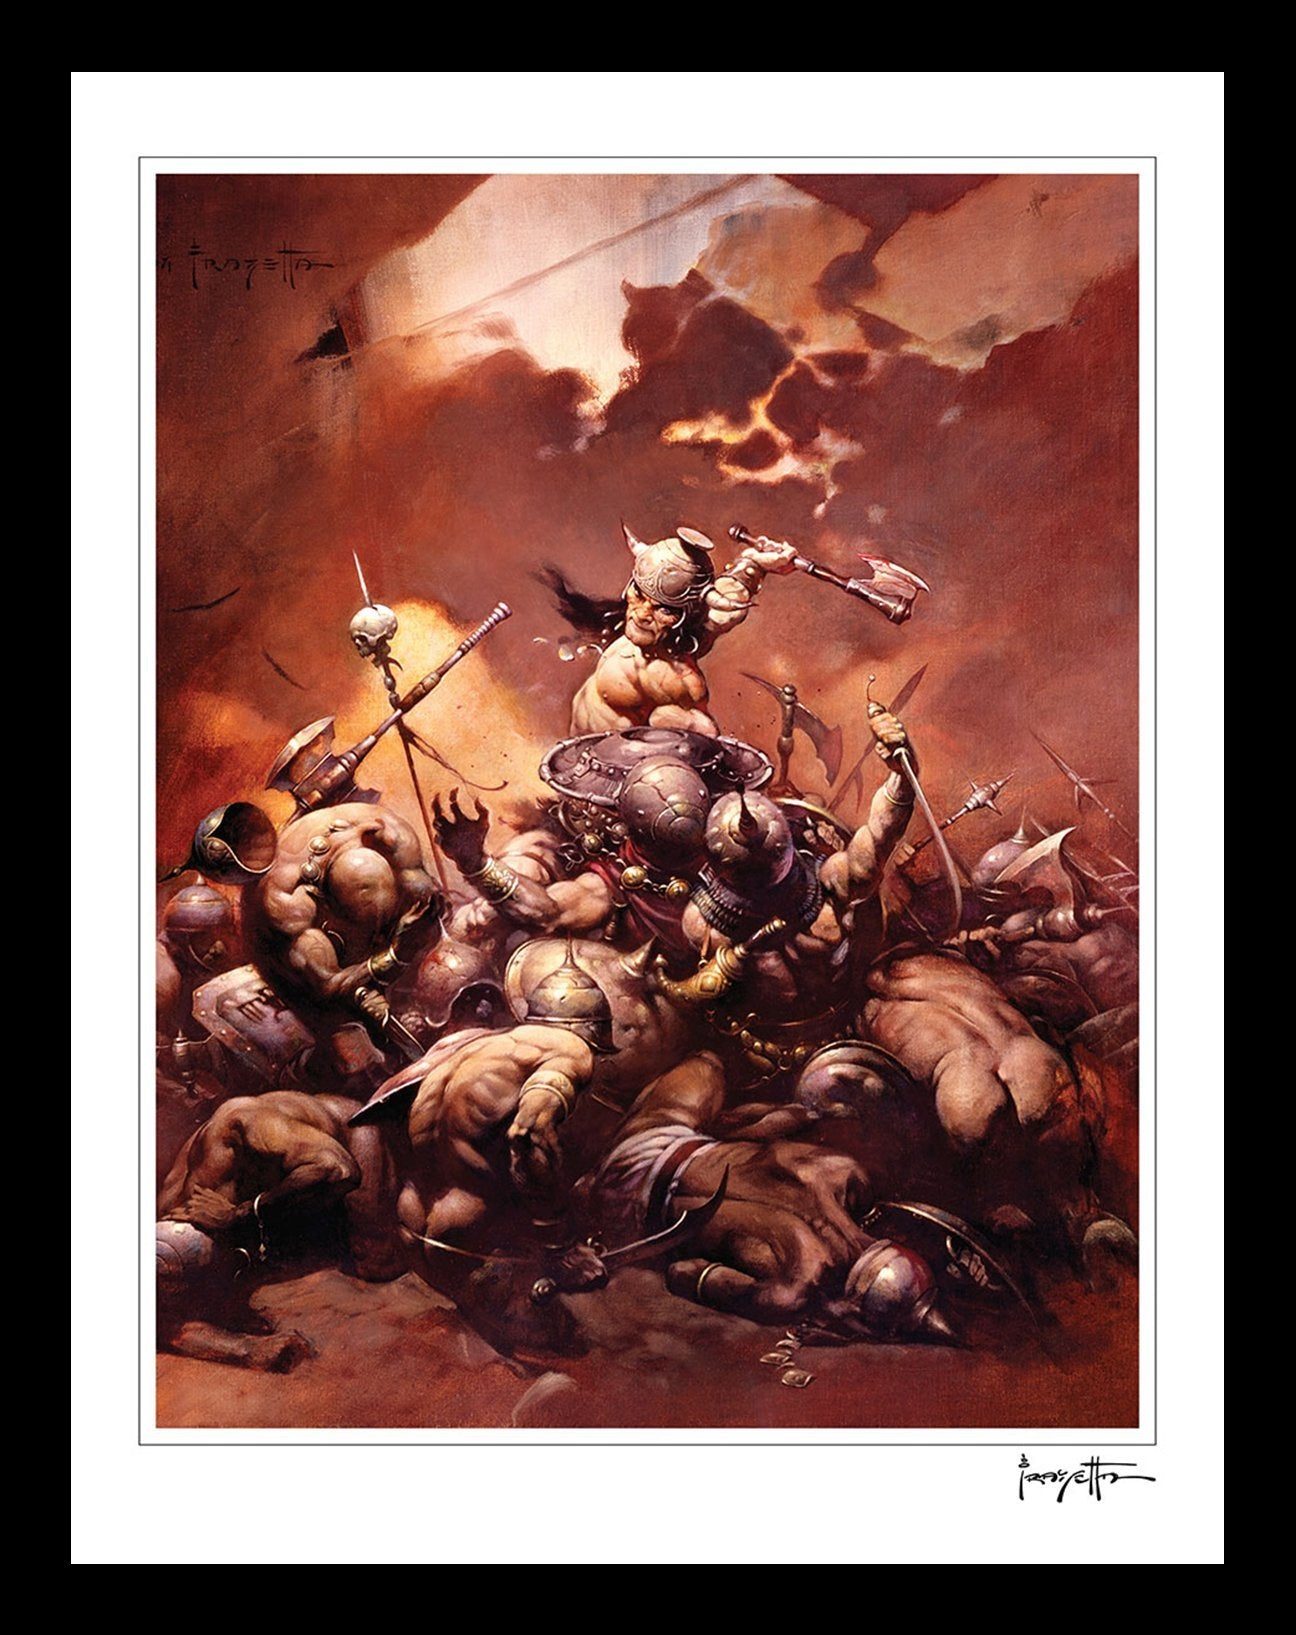 FrazettaGirls Art Print Conan The Destroyer Print